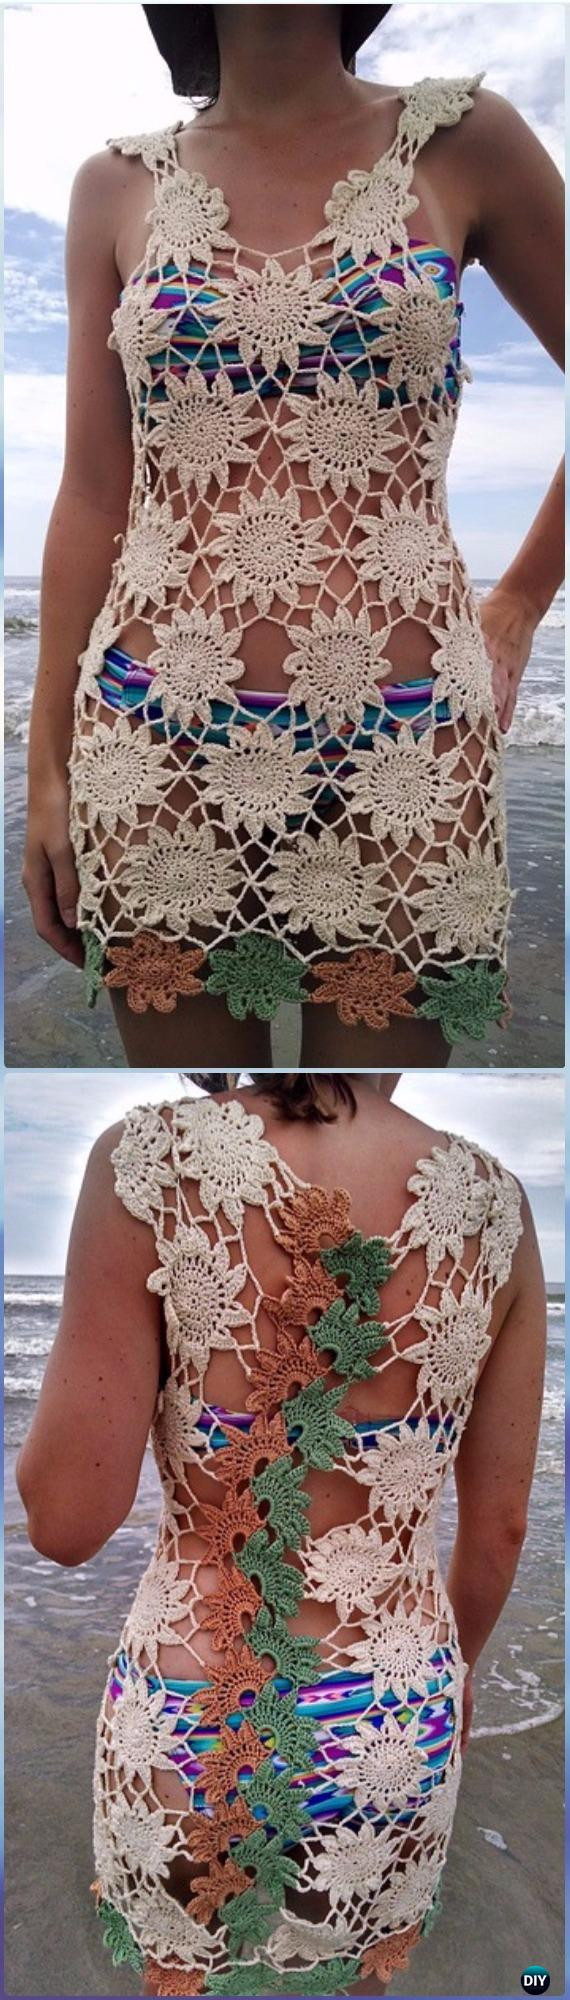 Best Of Crochet Beach Cover Up Free Patterns Women Summer top Crochet Beach Cover Up Patterns Of Adorable 47 Models Crochet Beach Cover Up Patterns